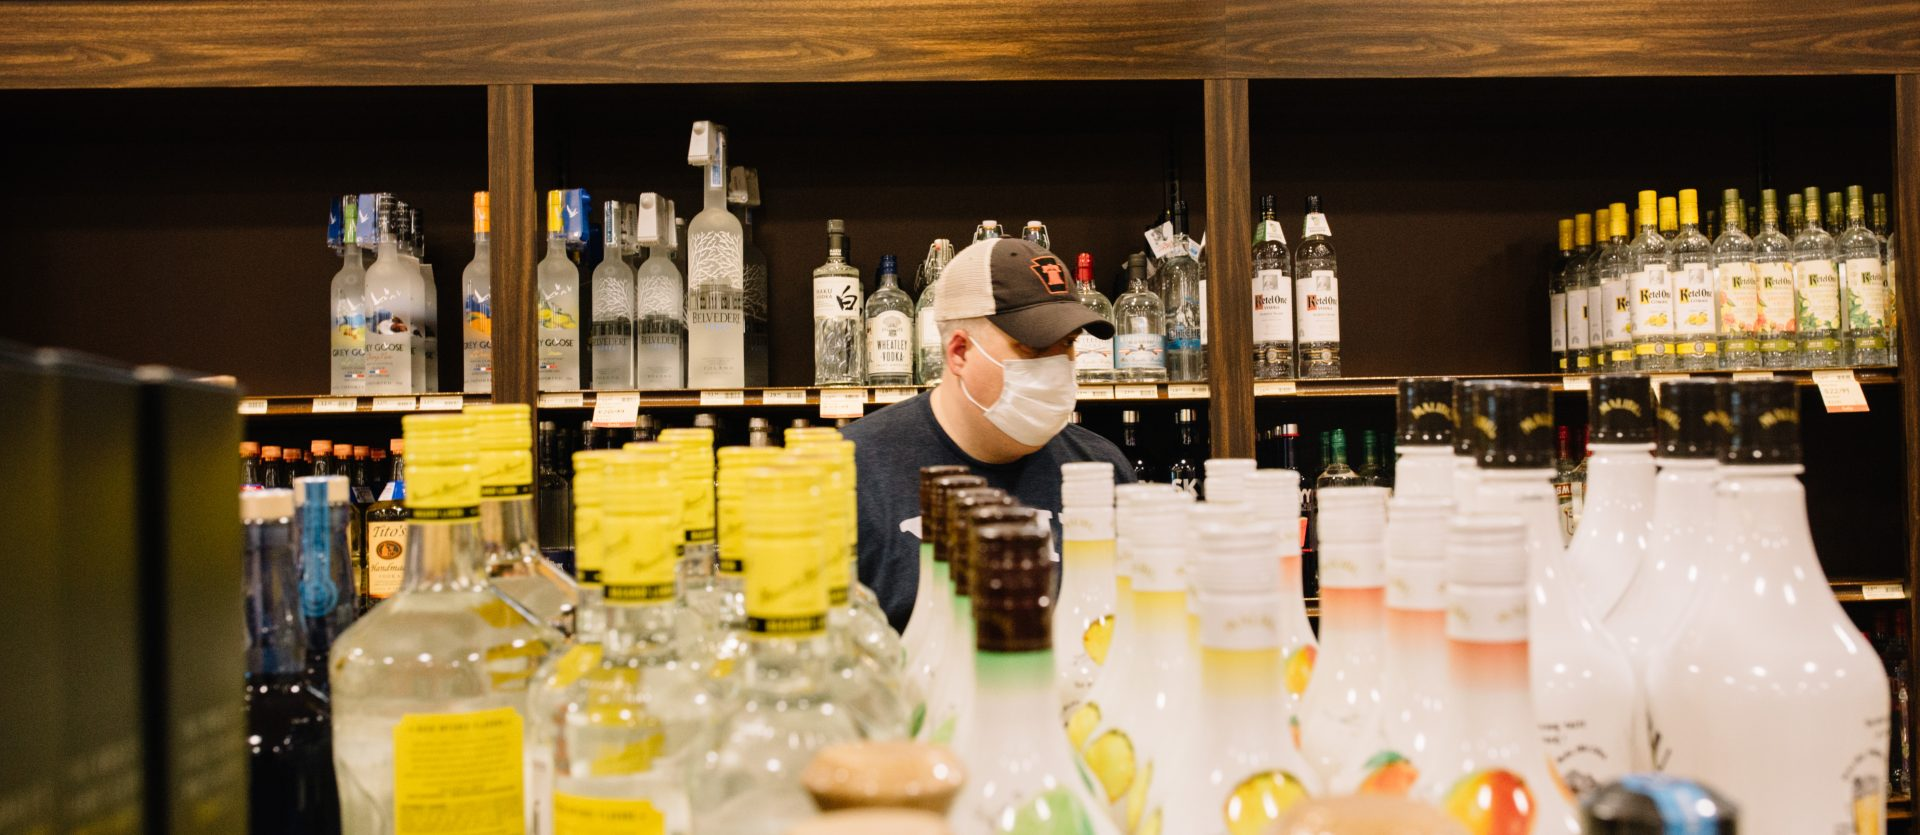 A customer wears a mask while shopping at a Fine Wine and Good Spirits store in Cumberland County on May 22, 2020, the first day the store reopened to shoppers after having been closed due to the coroanvirus.